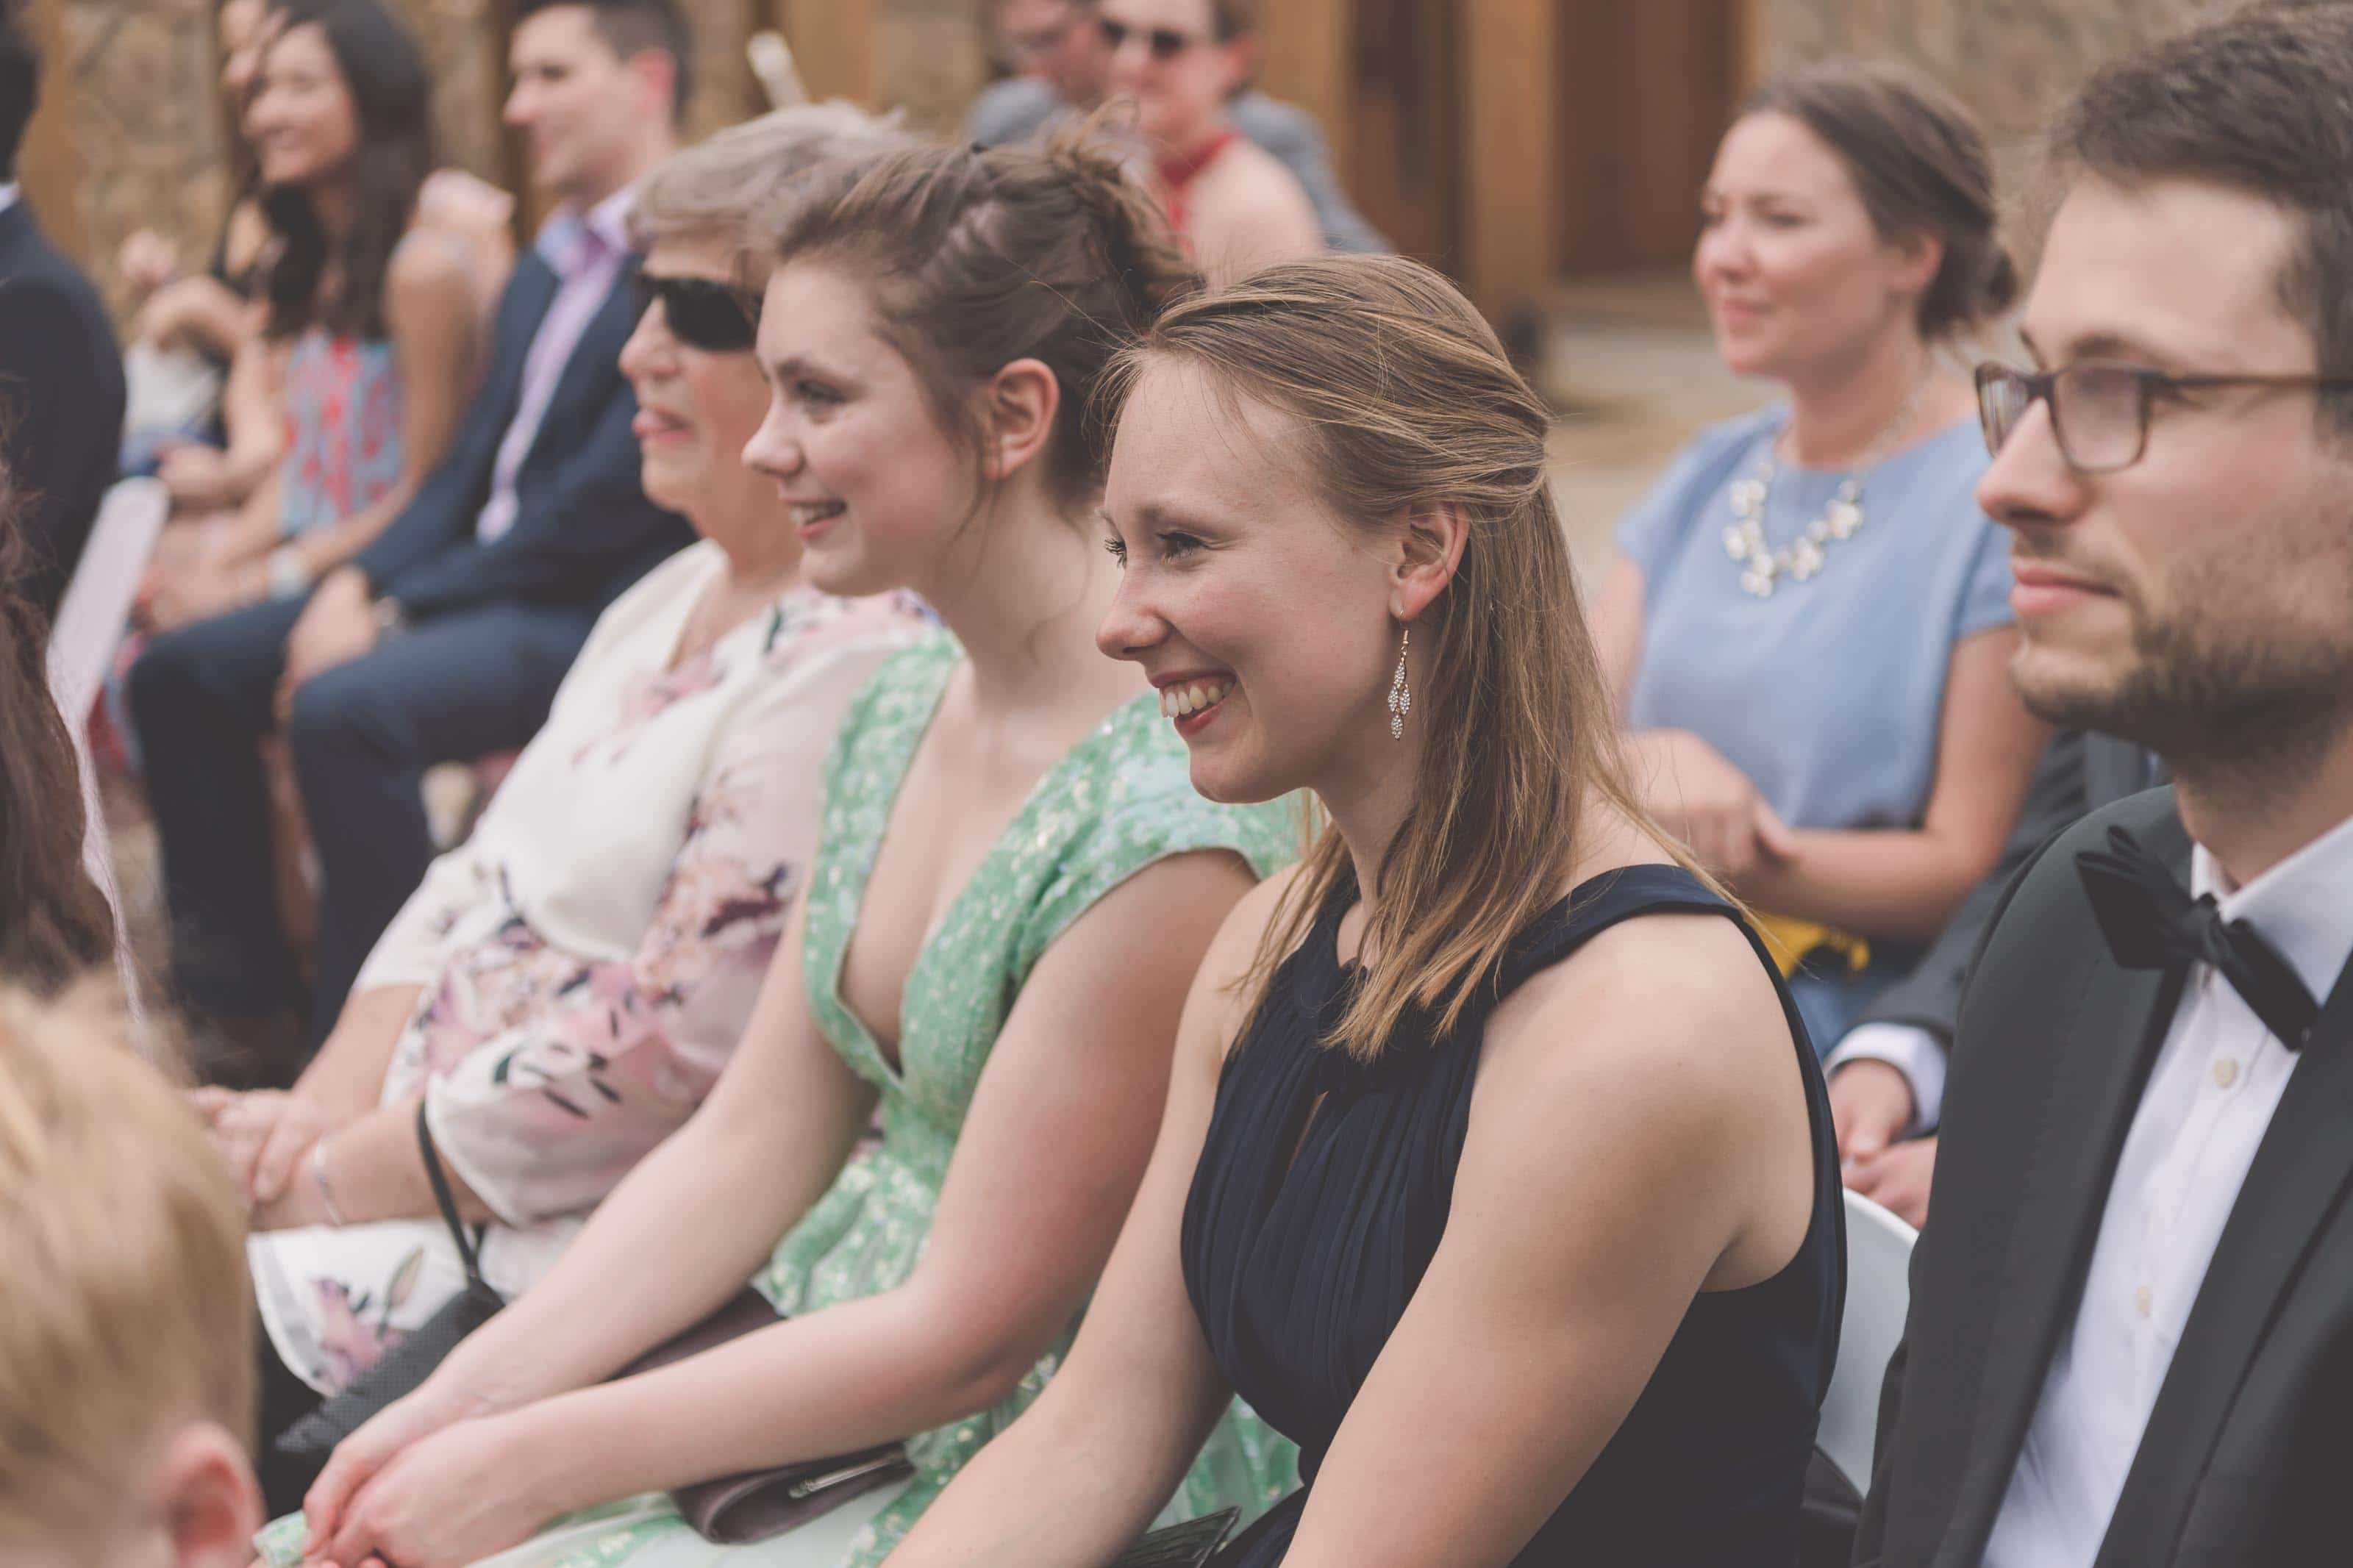 Wedding Photography Melbourne by Pause The Moment - Guests smiling at a wedding - Paringa Estate Wedding Photographer